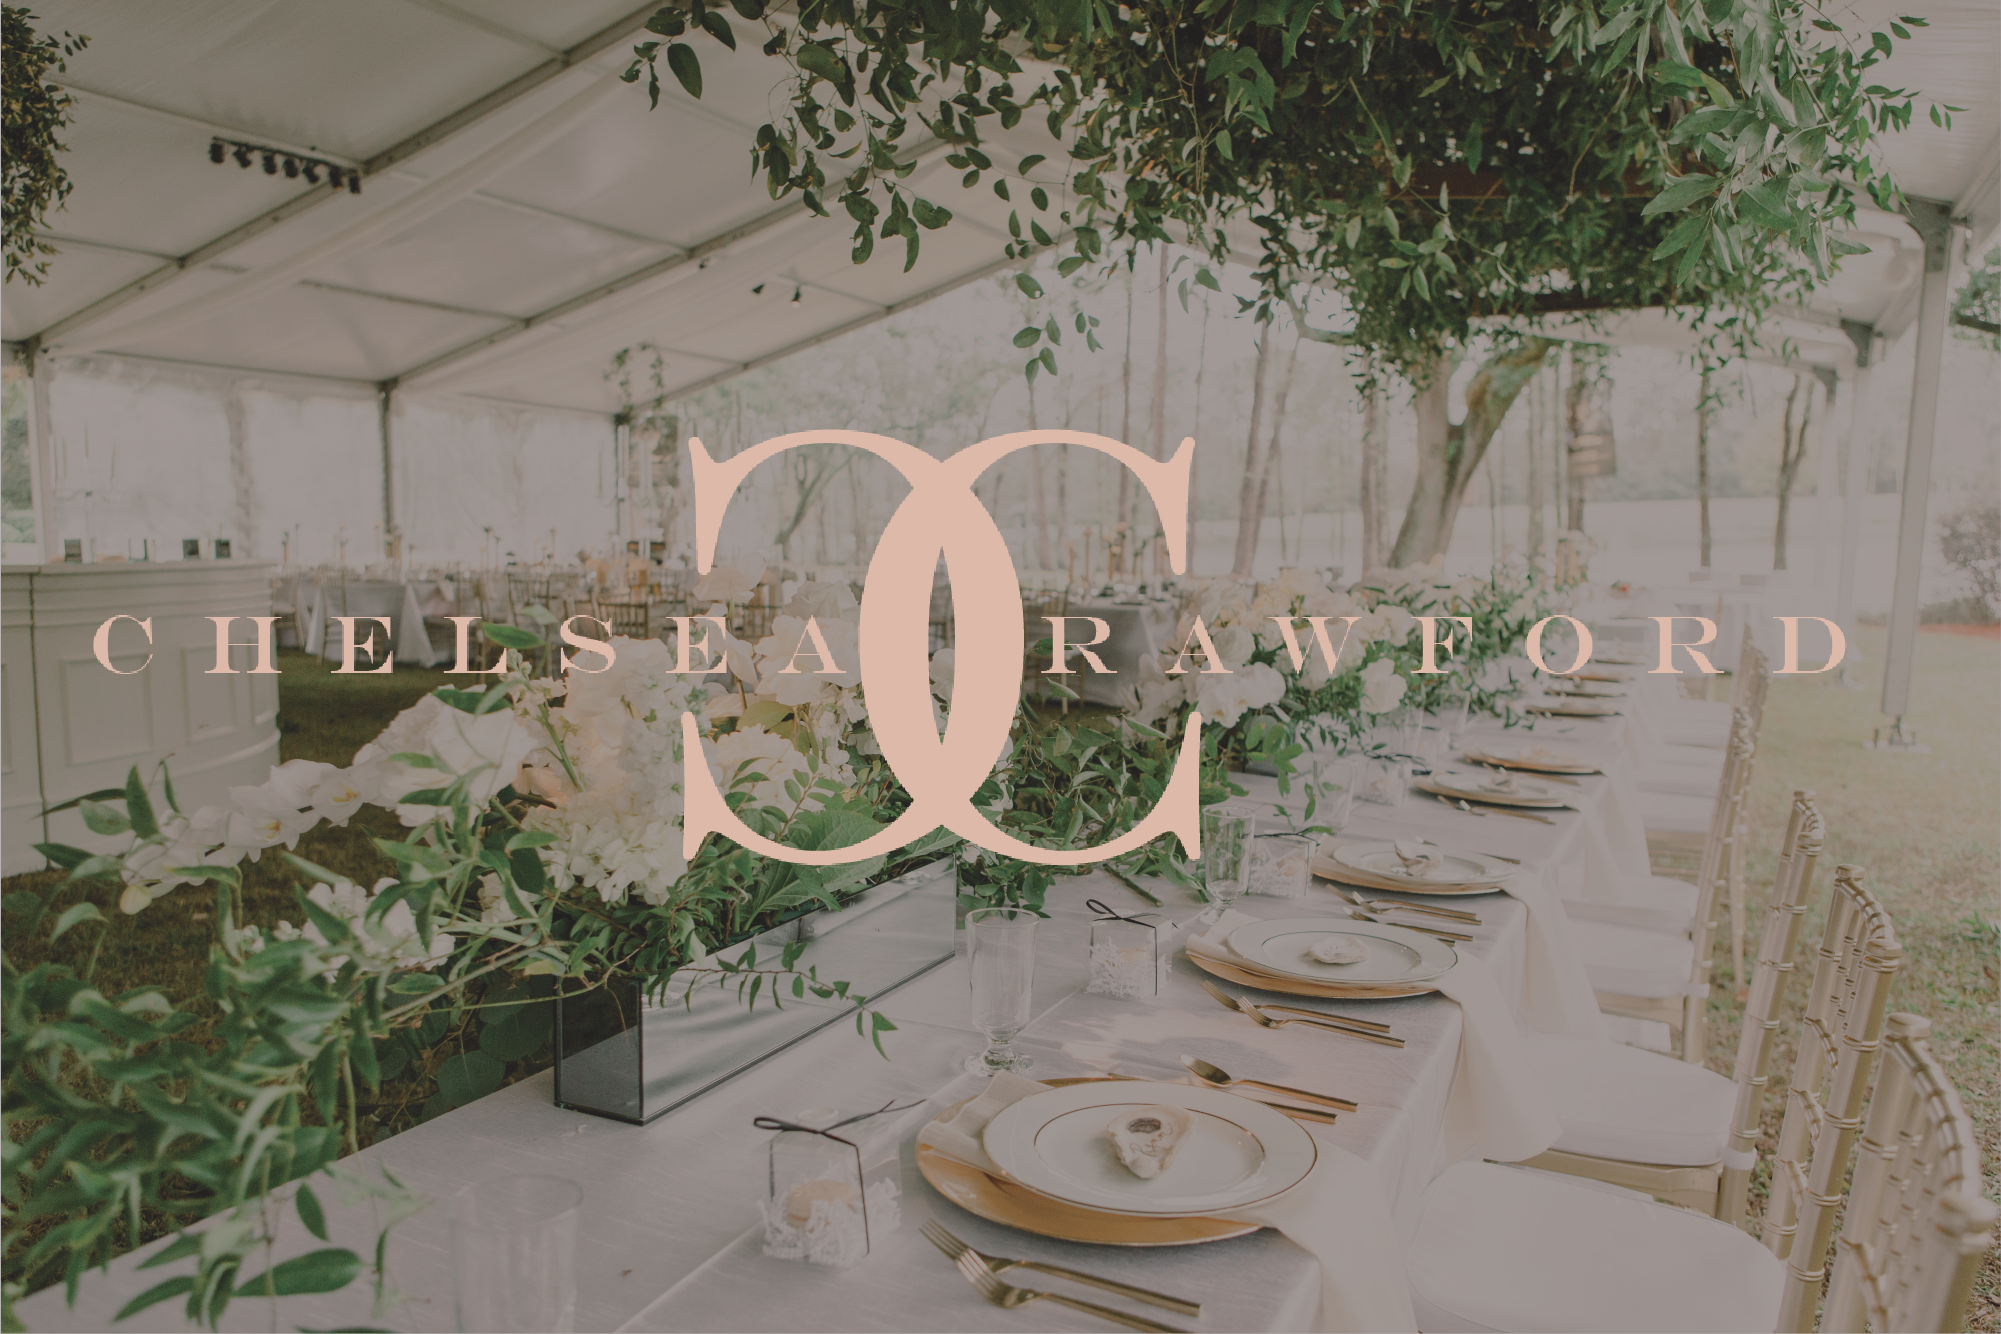 Chelsea Crawford Events and Design